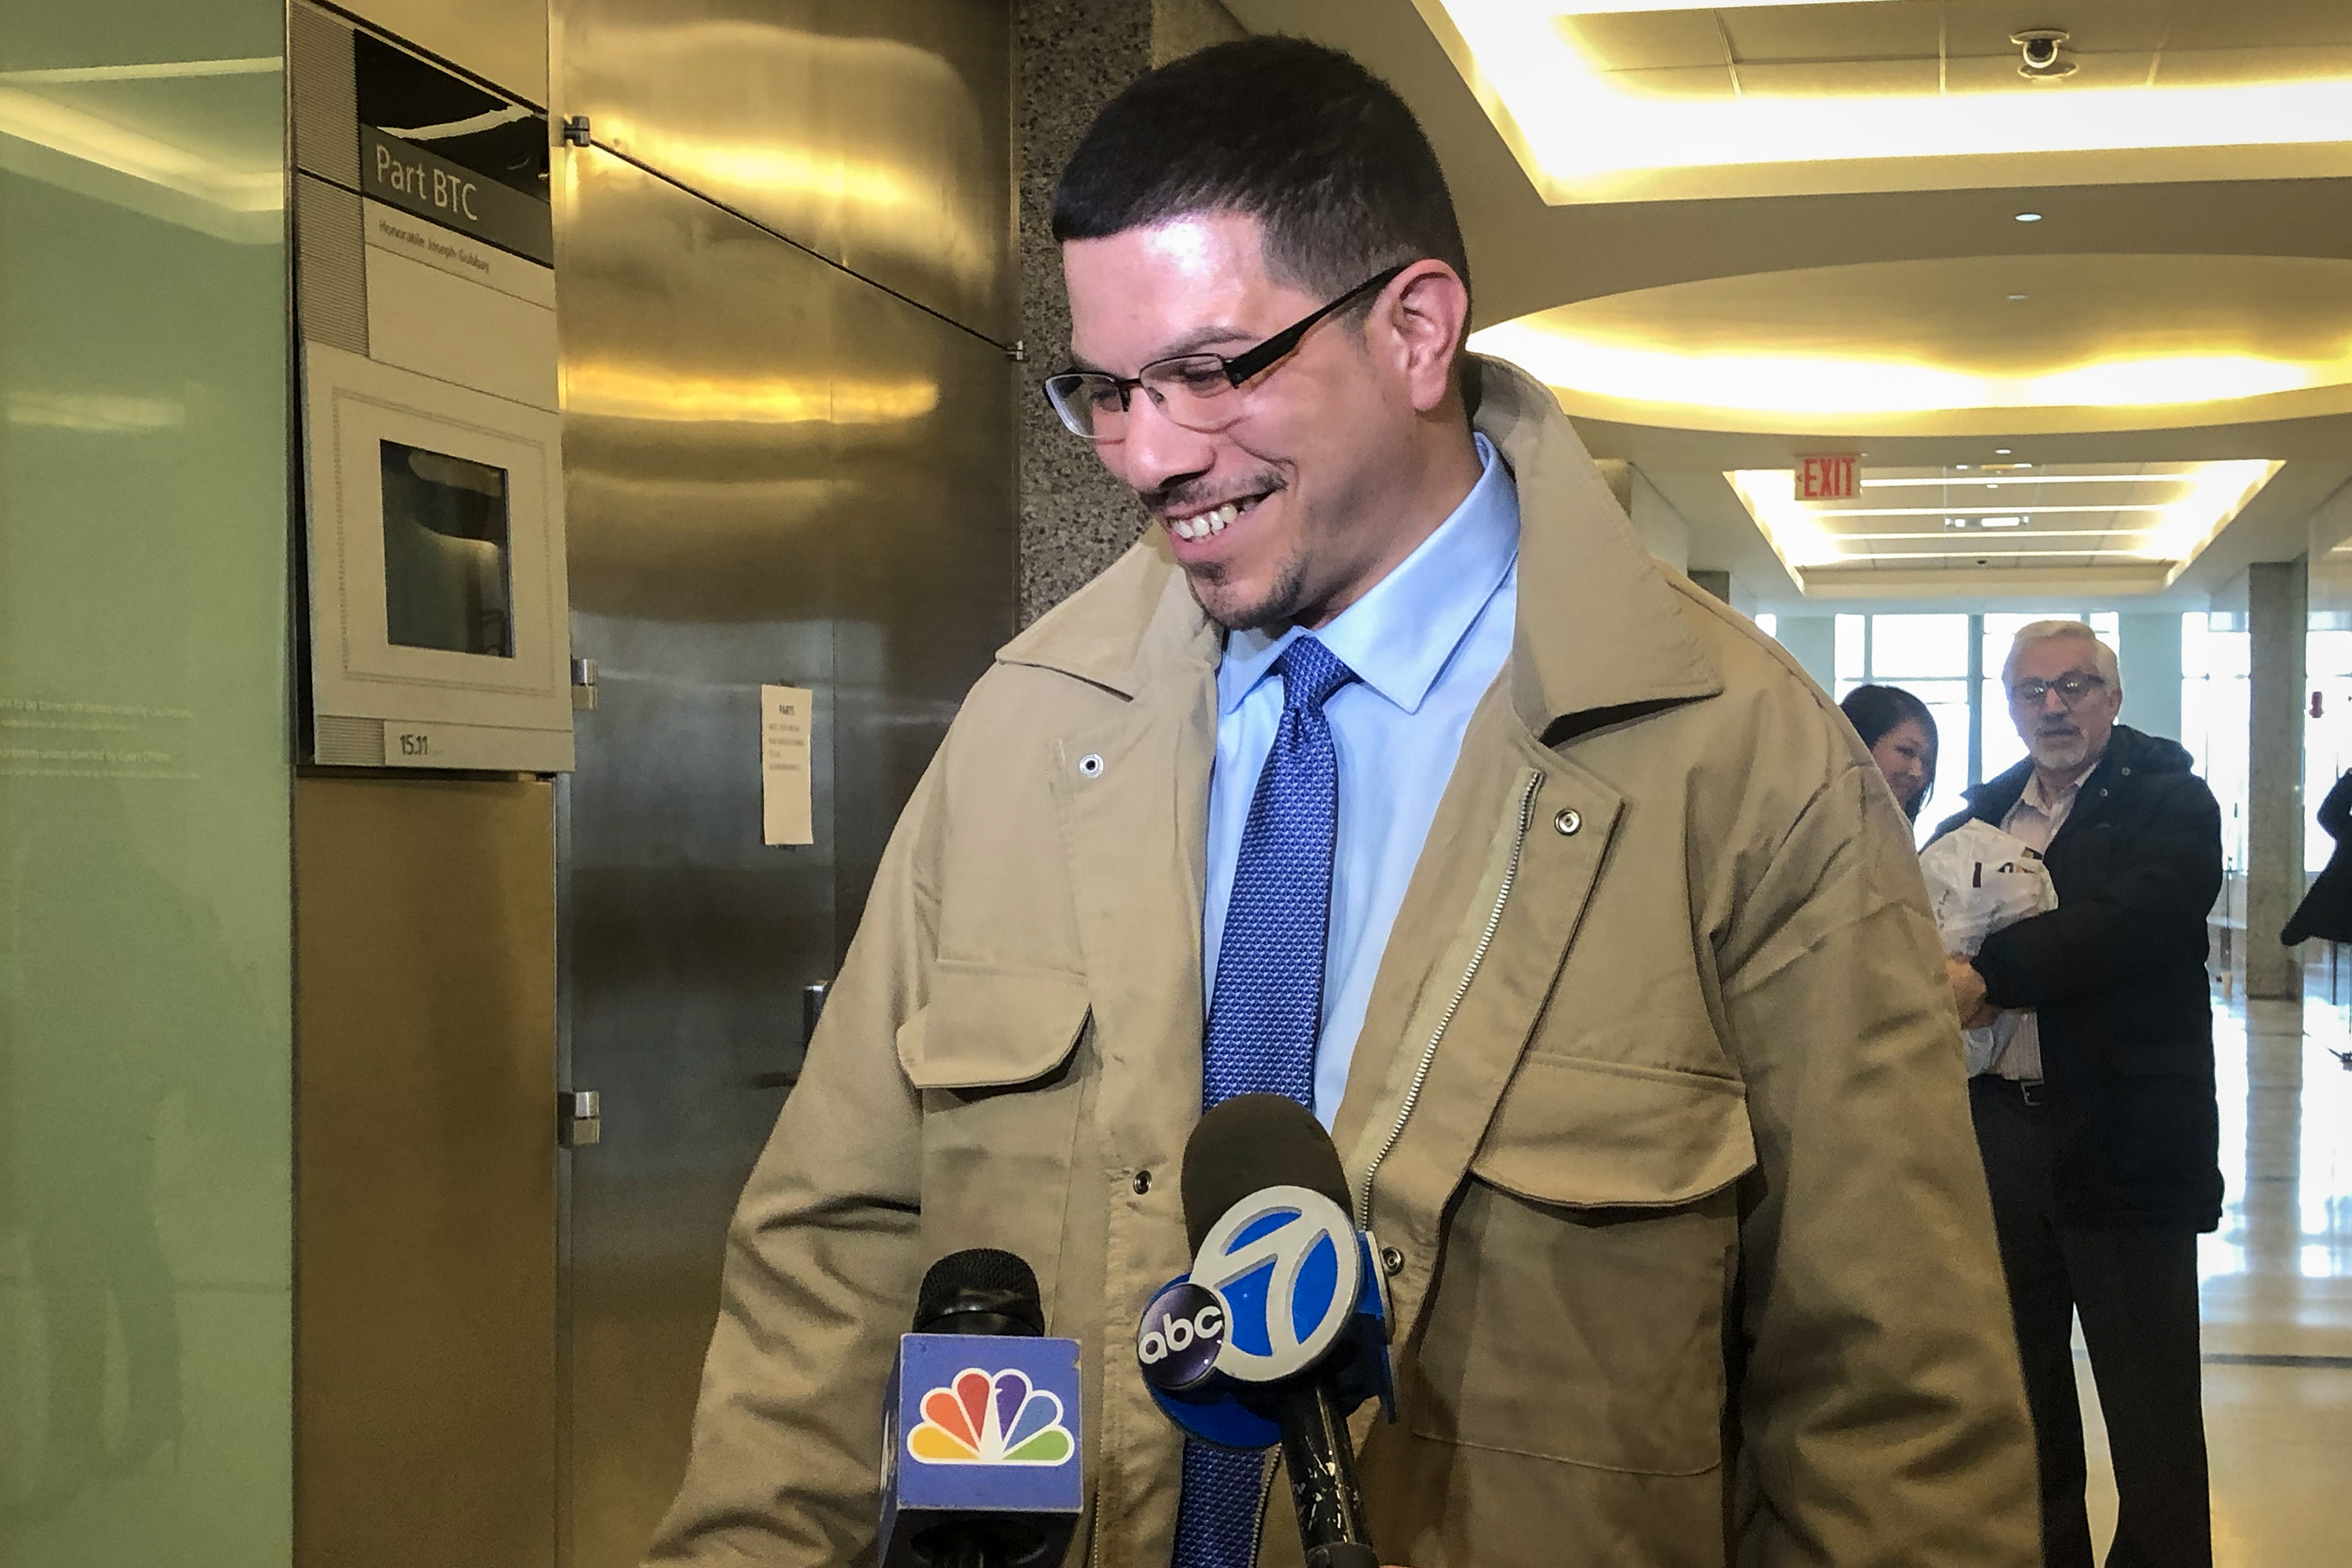 Bladimil Arroyo on the day in February 2019 that a Brooklyn judge overturned his conviction for a 2001 murder.